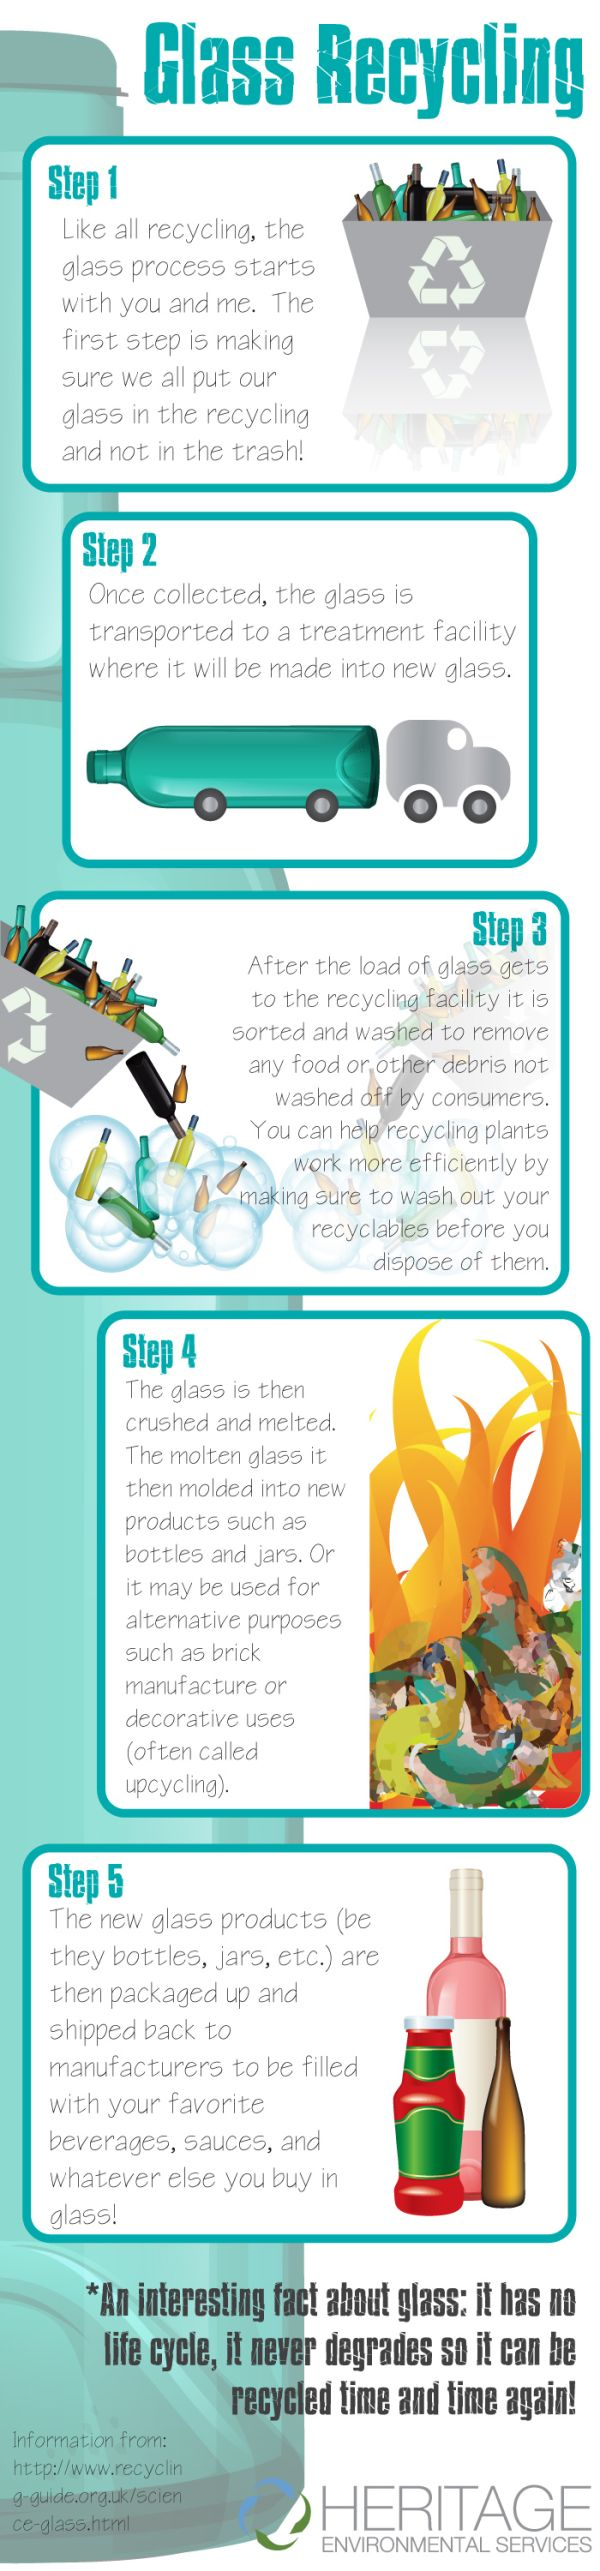 Glass Recycling Infographic